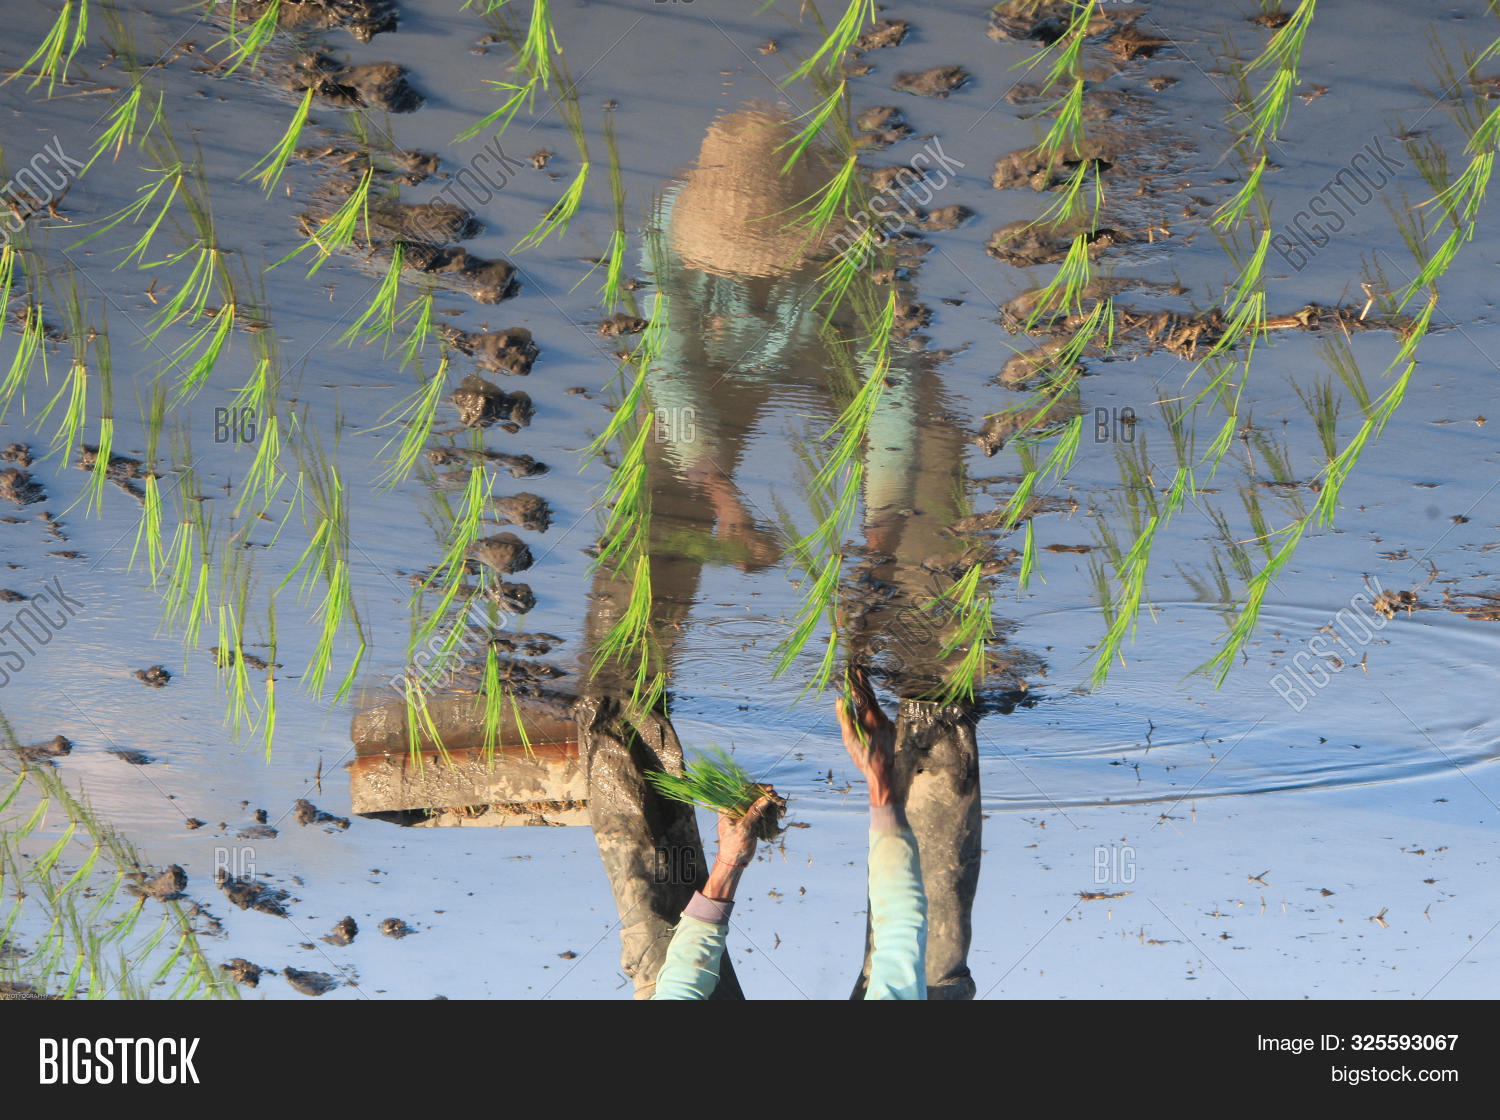 Water Reflection Of A Farmer Planting Rice Seedlings In A Muddy Rice Field And Wet, So That The Rice